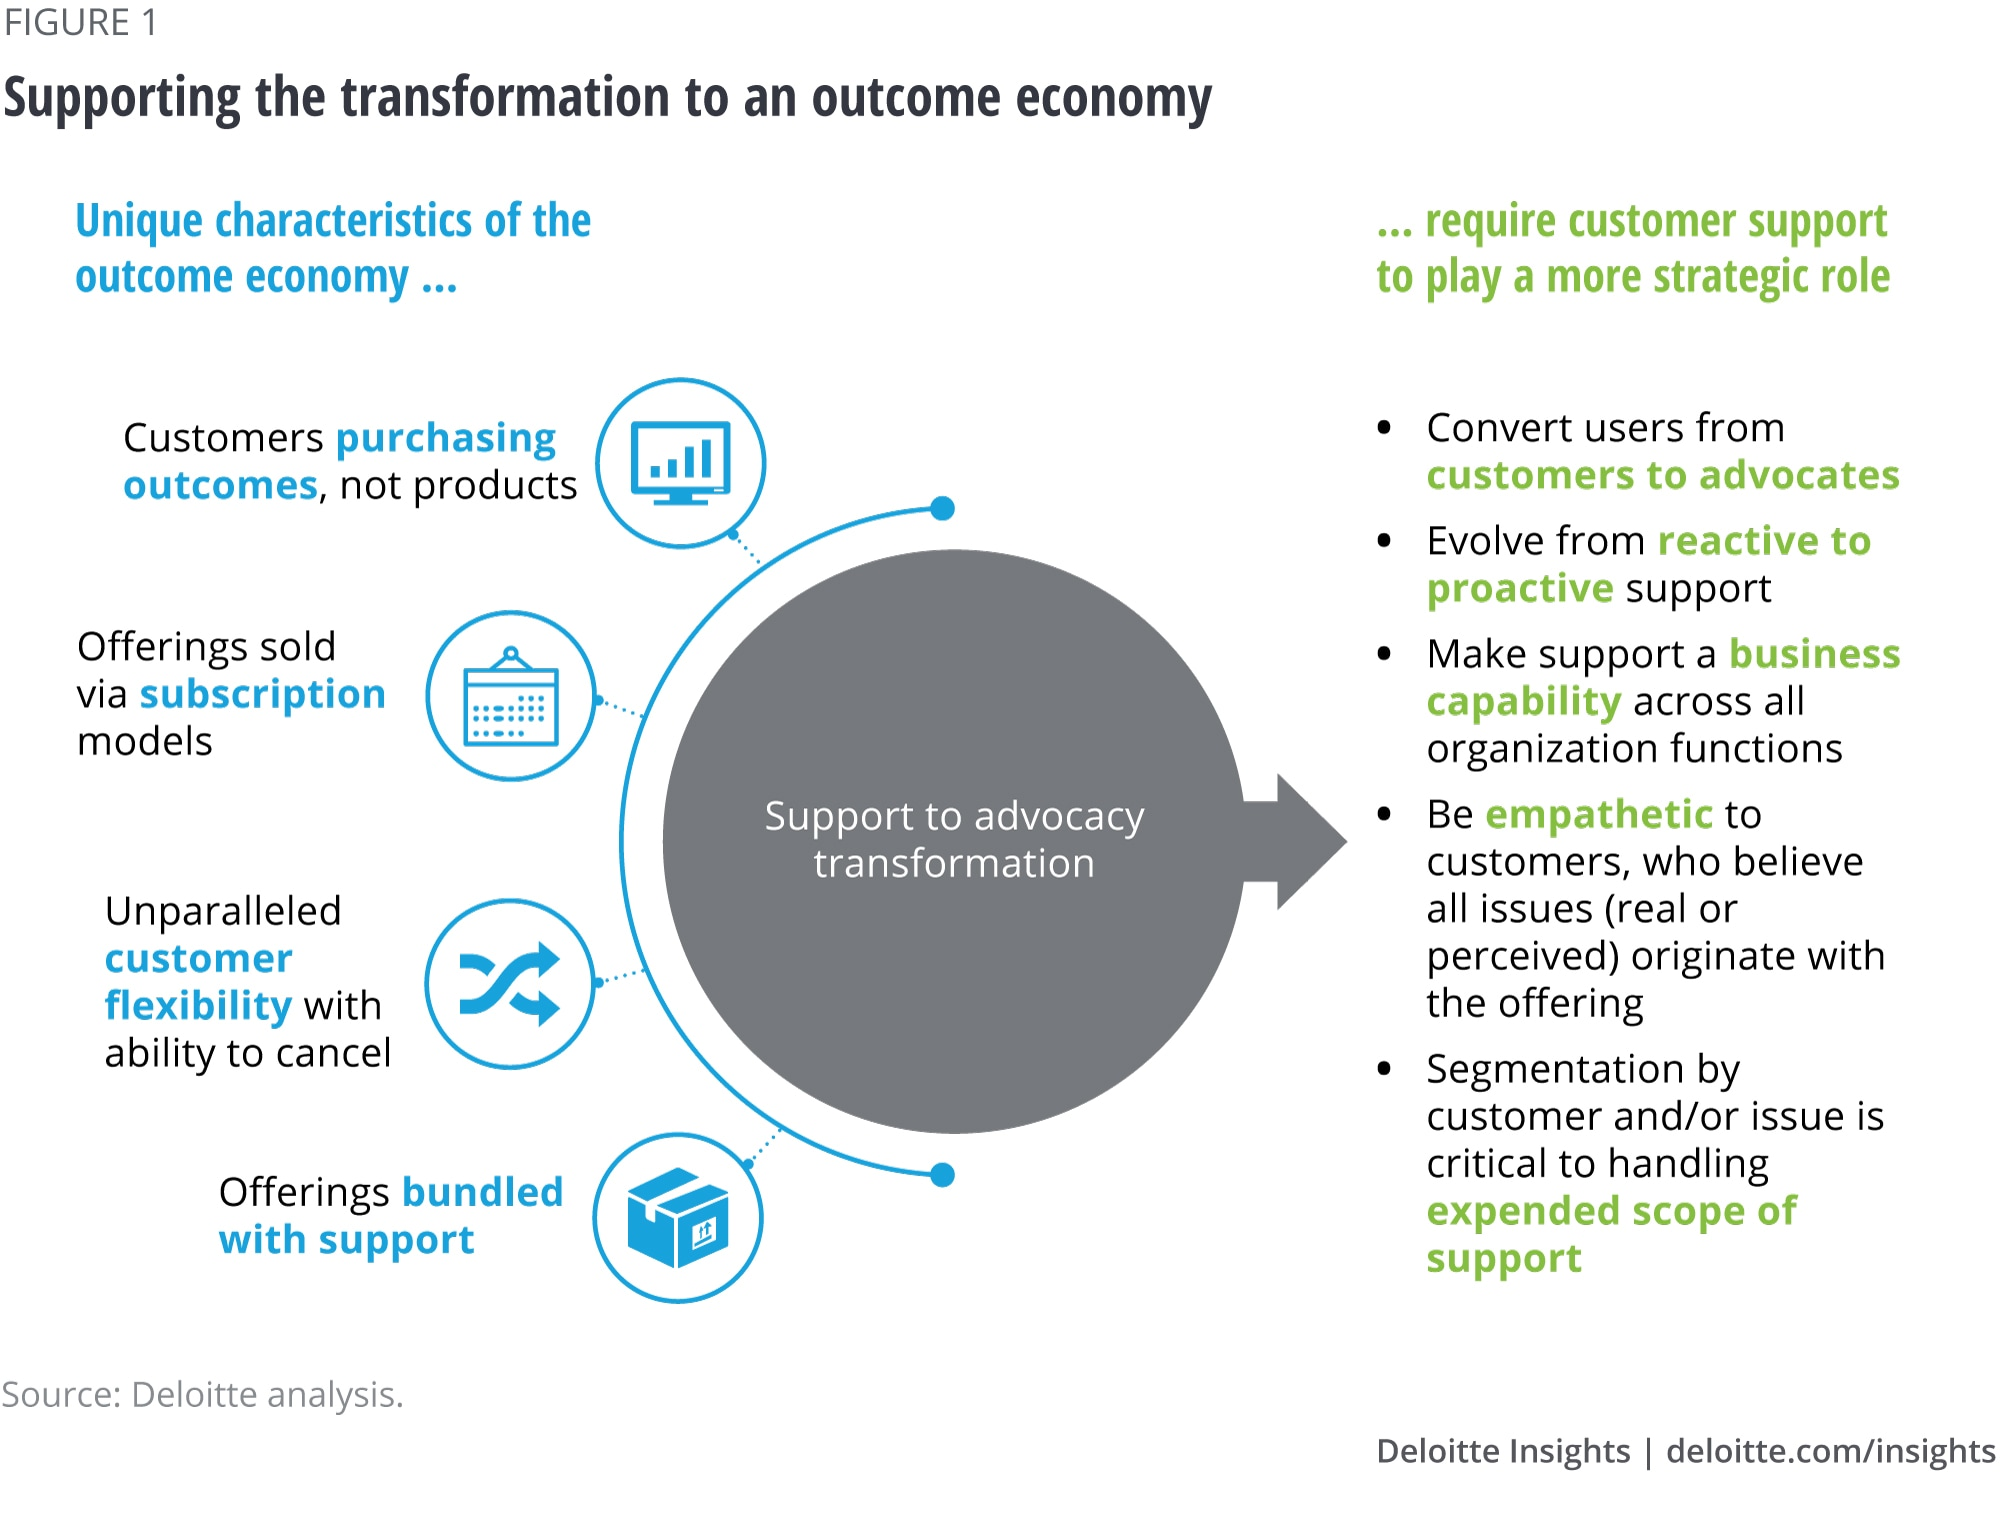 Figure 1. Supporting the transformation to an outcome economy